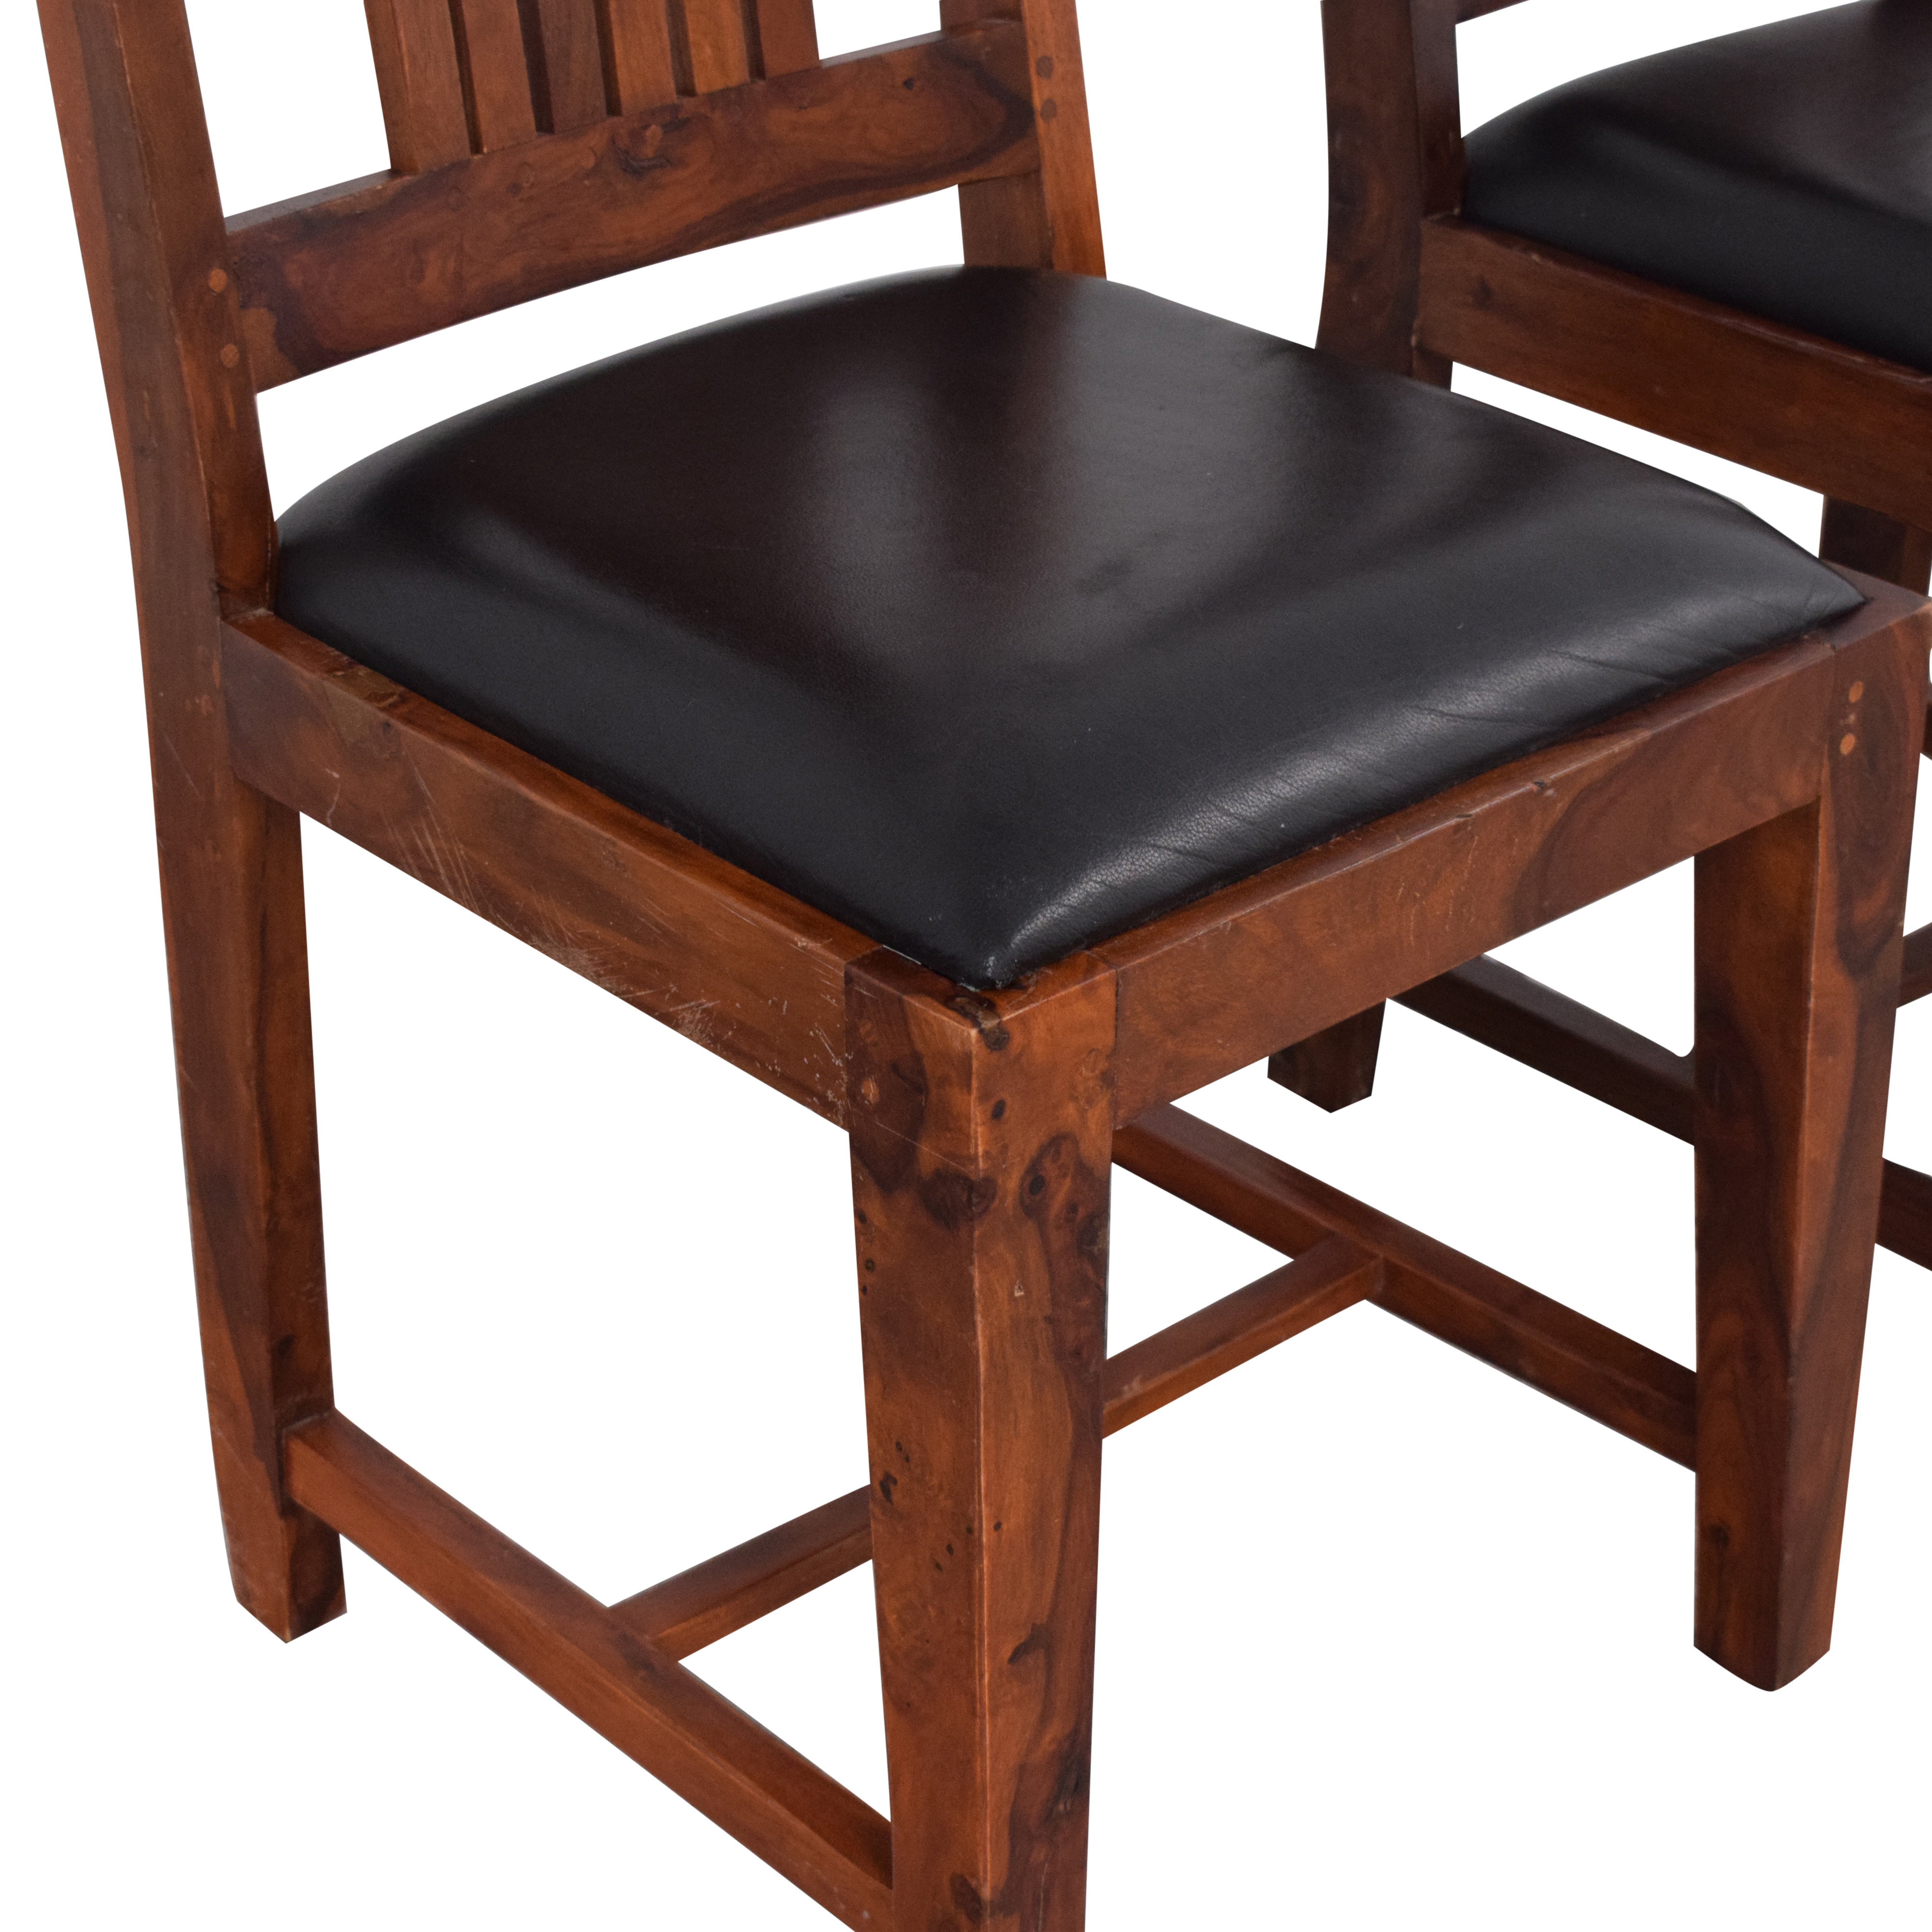 ABC Carpet & Home ABC Carpet & Home Dining Chairs Dining Chairs